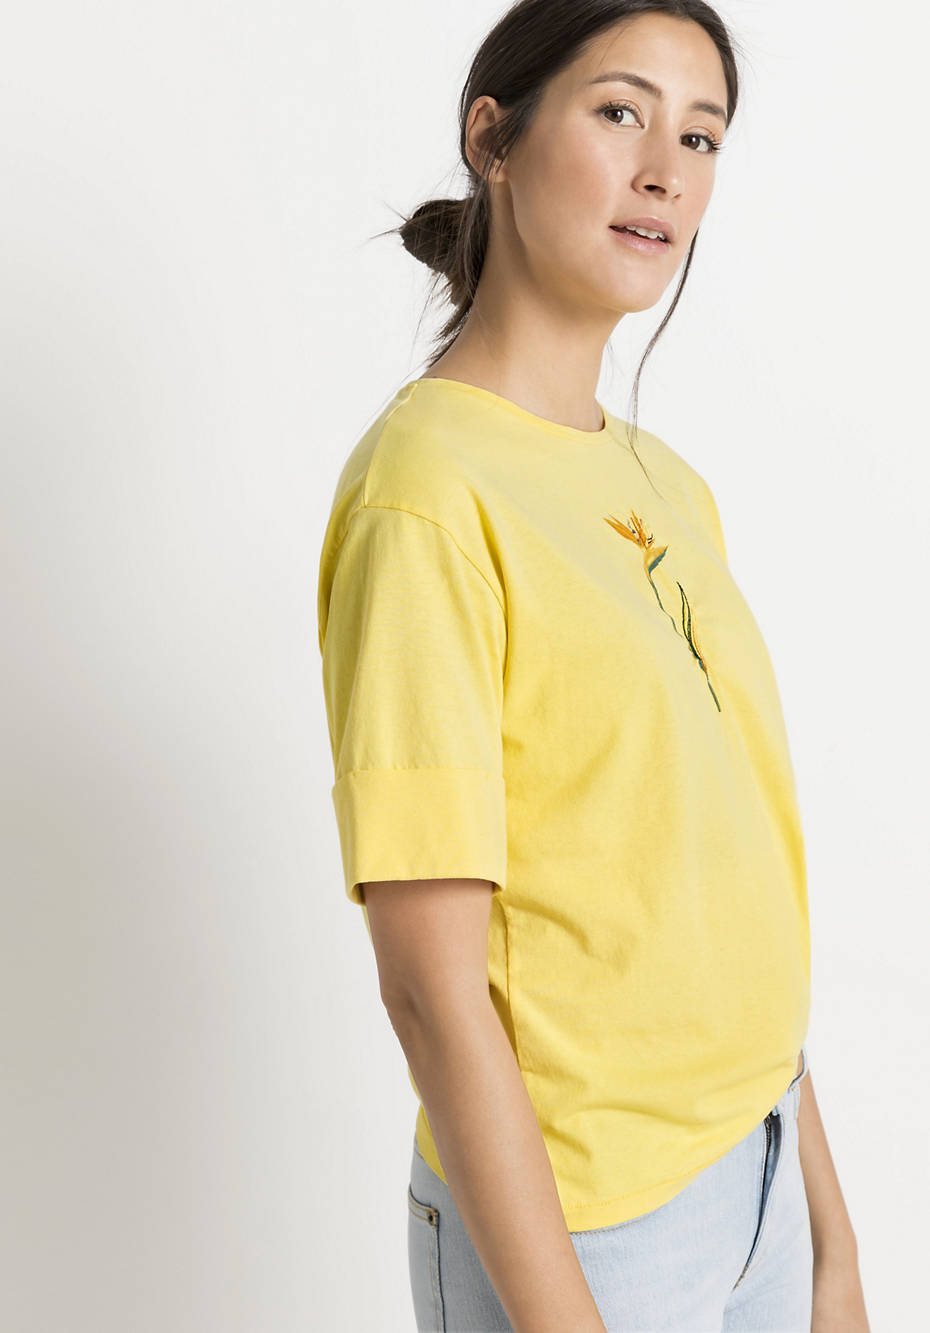 Plant-dyed shirt made of pure organic cotton